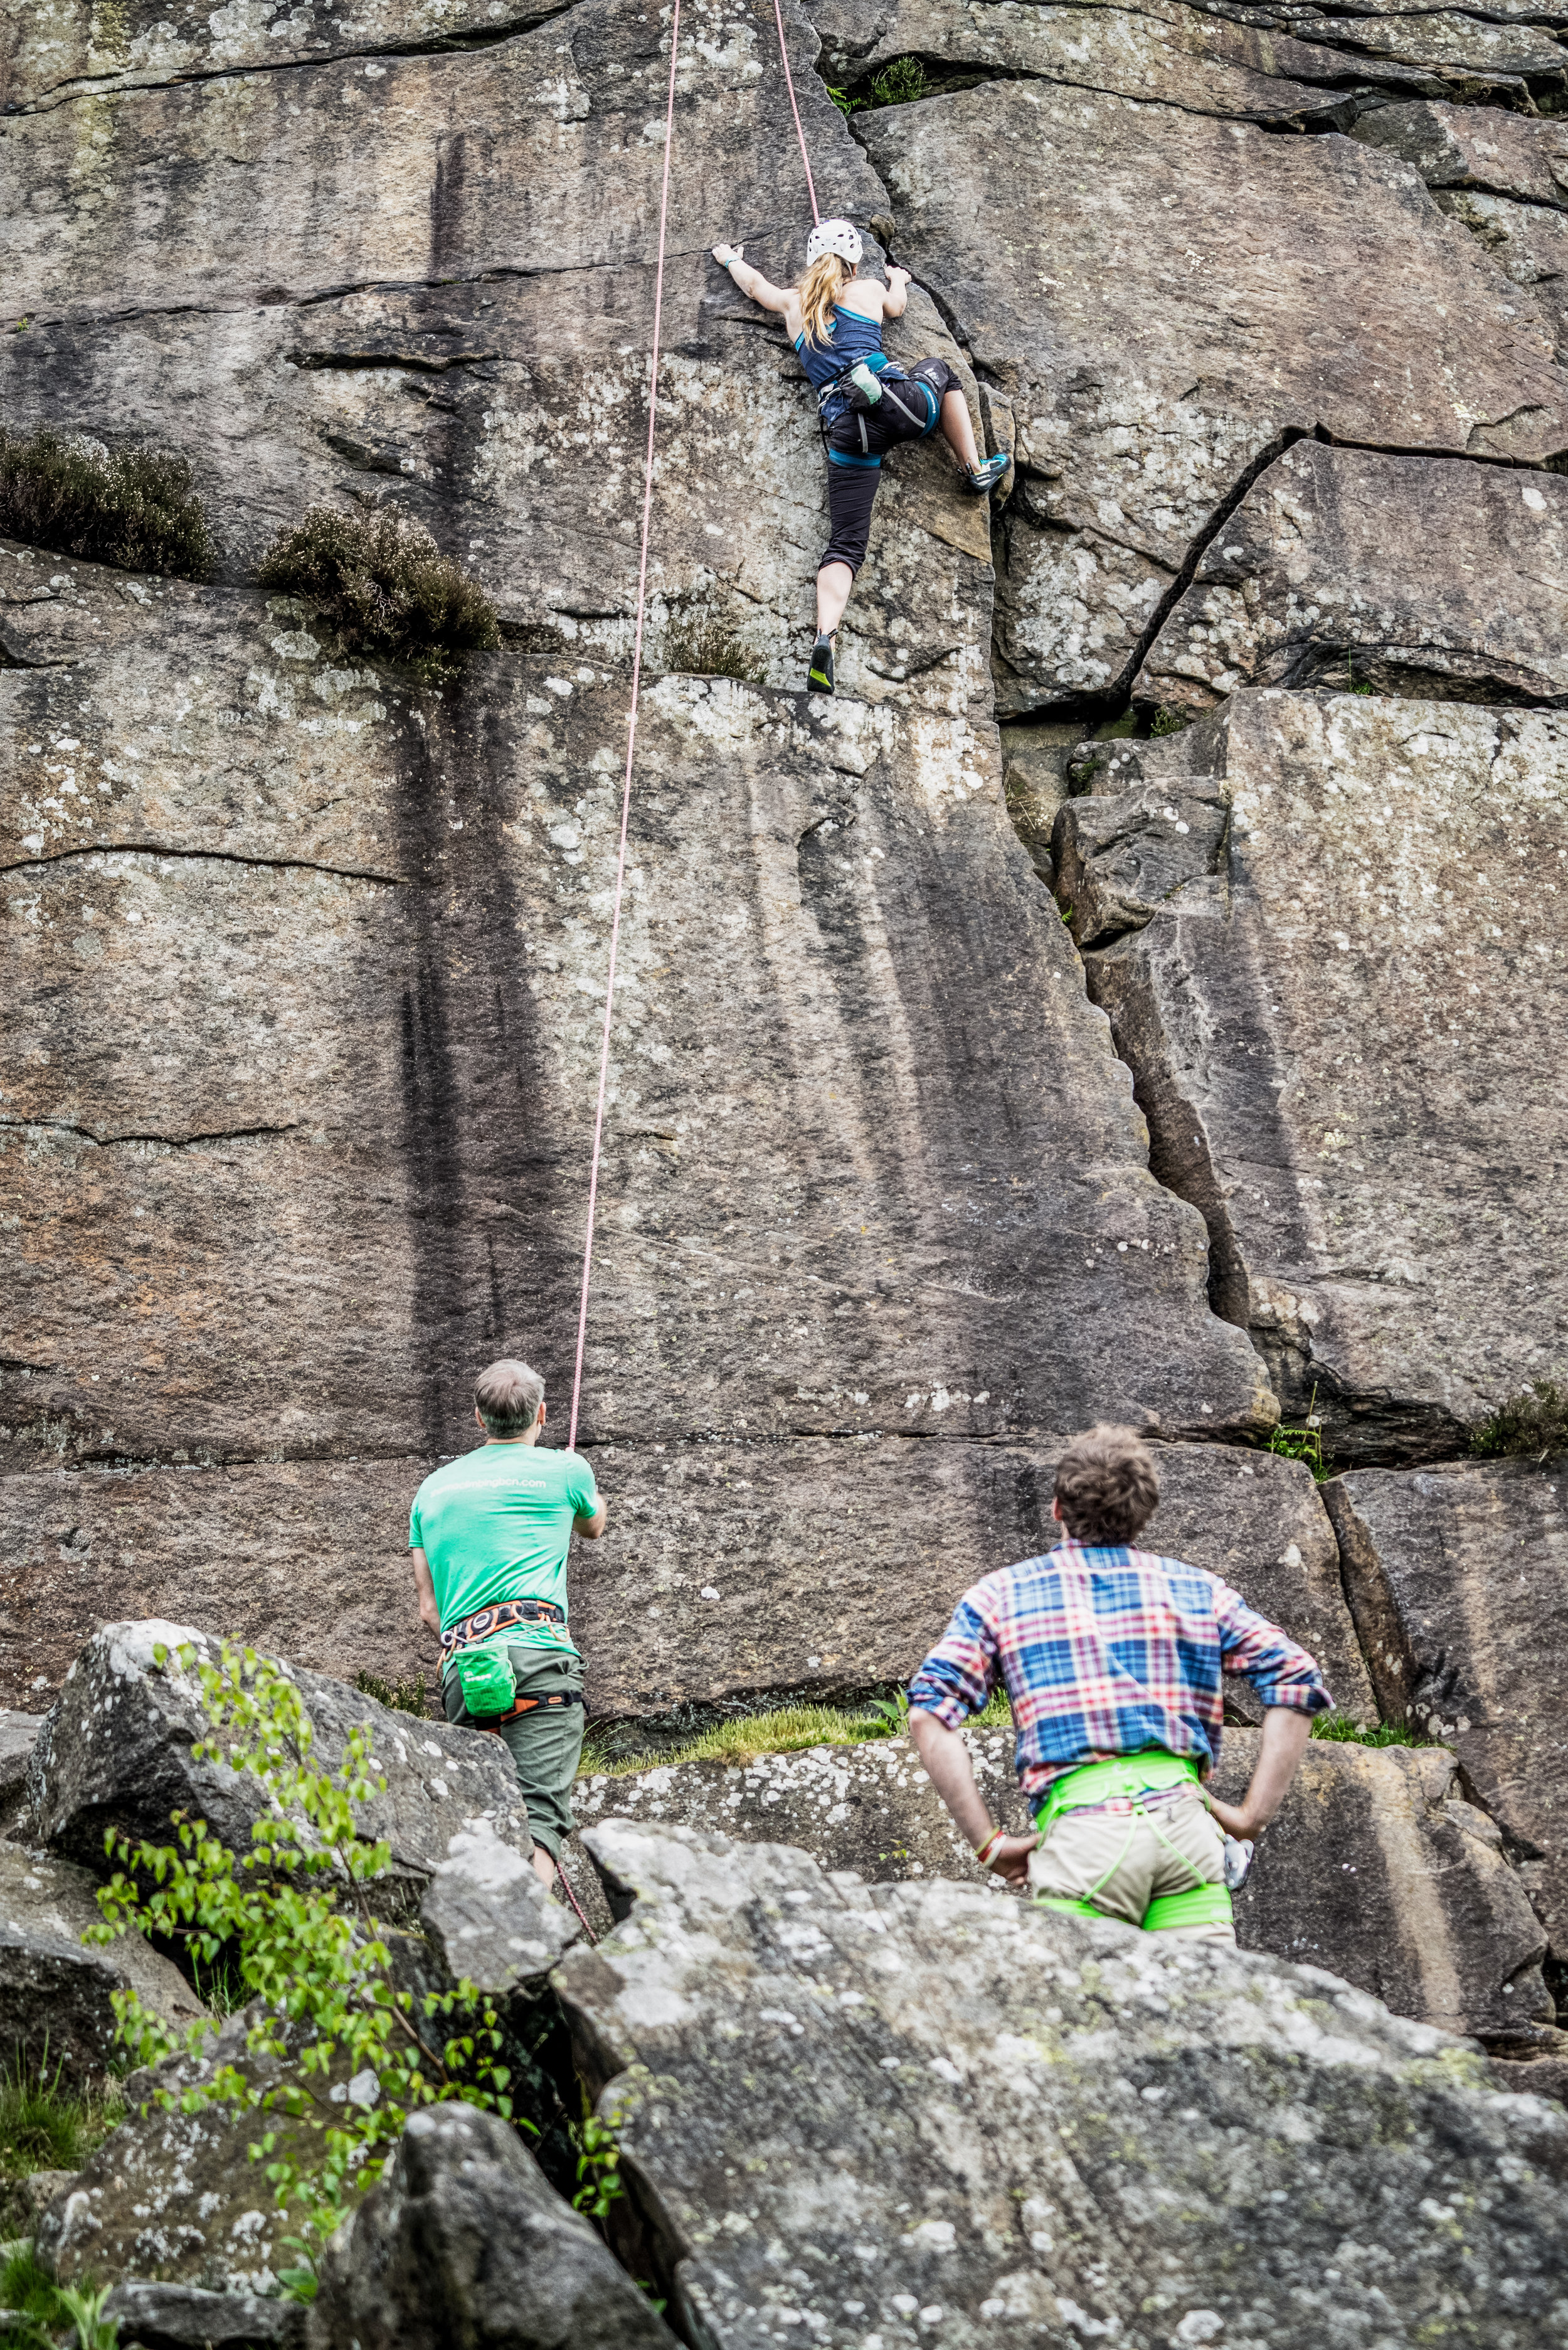 Tackling Trapeze Direct - this is the difficult bulge section I was stuck on. Photo by Phil Sproson